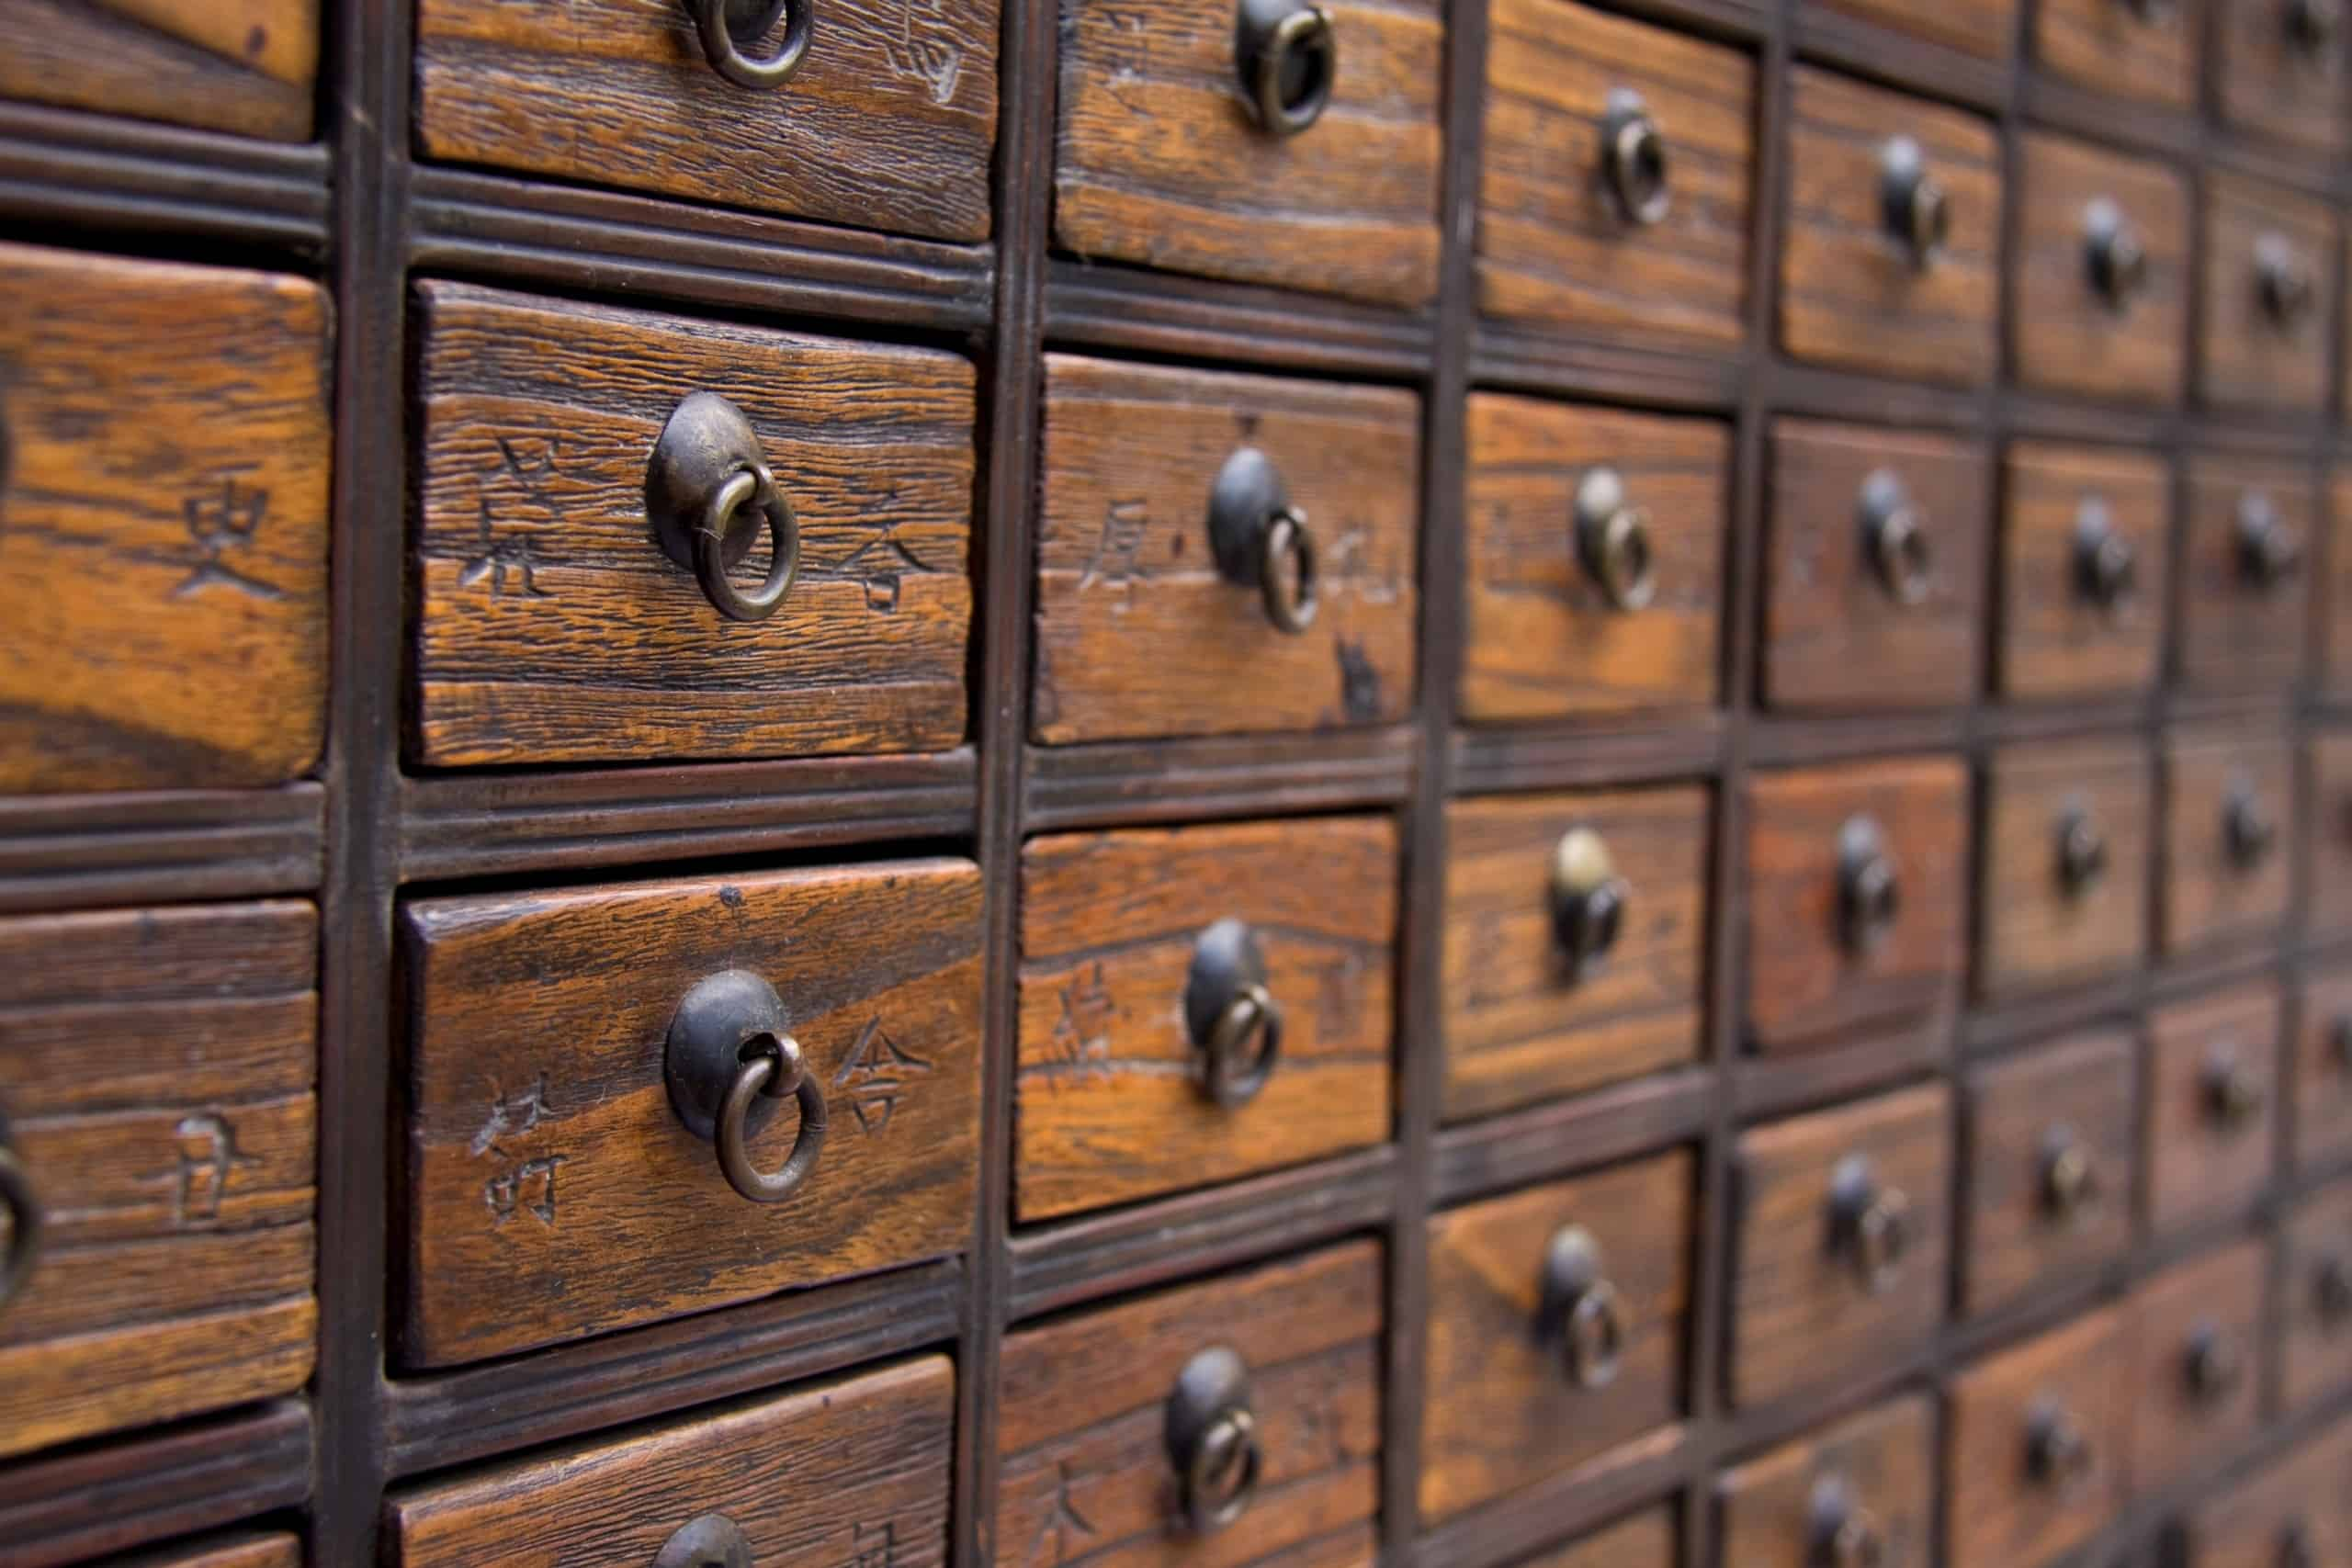 An antique chest used to store chinese medicinal herbs